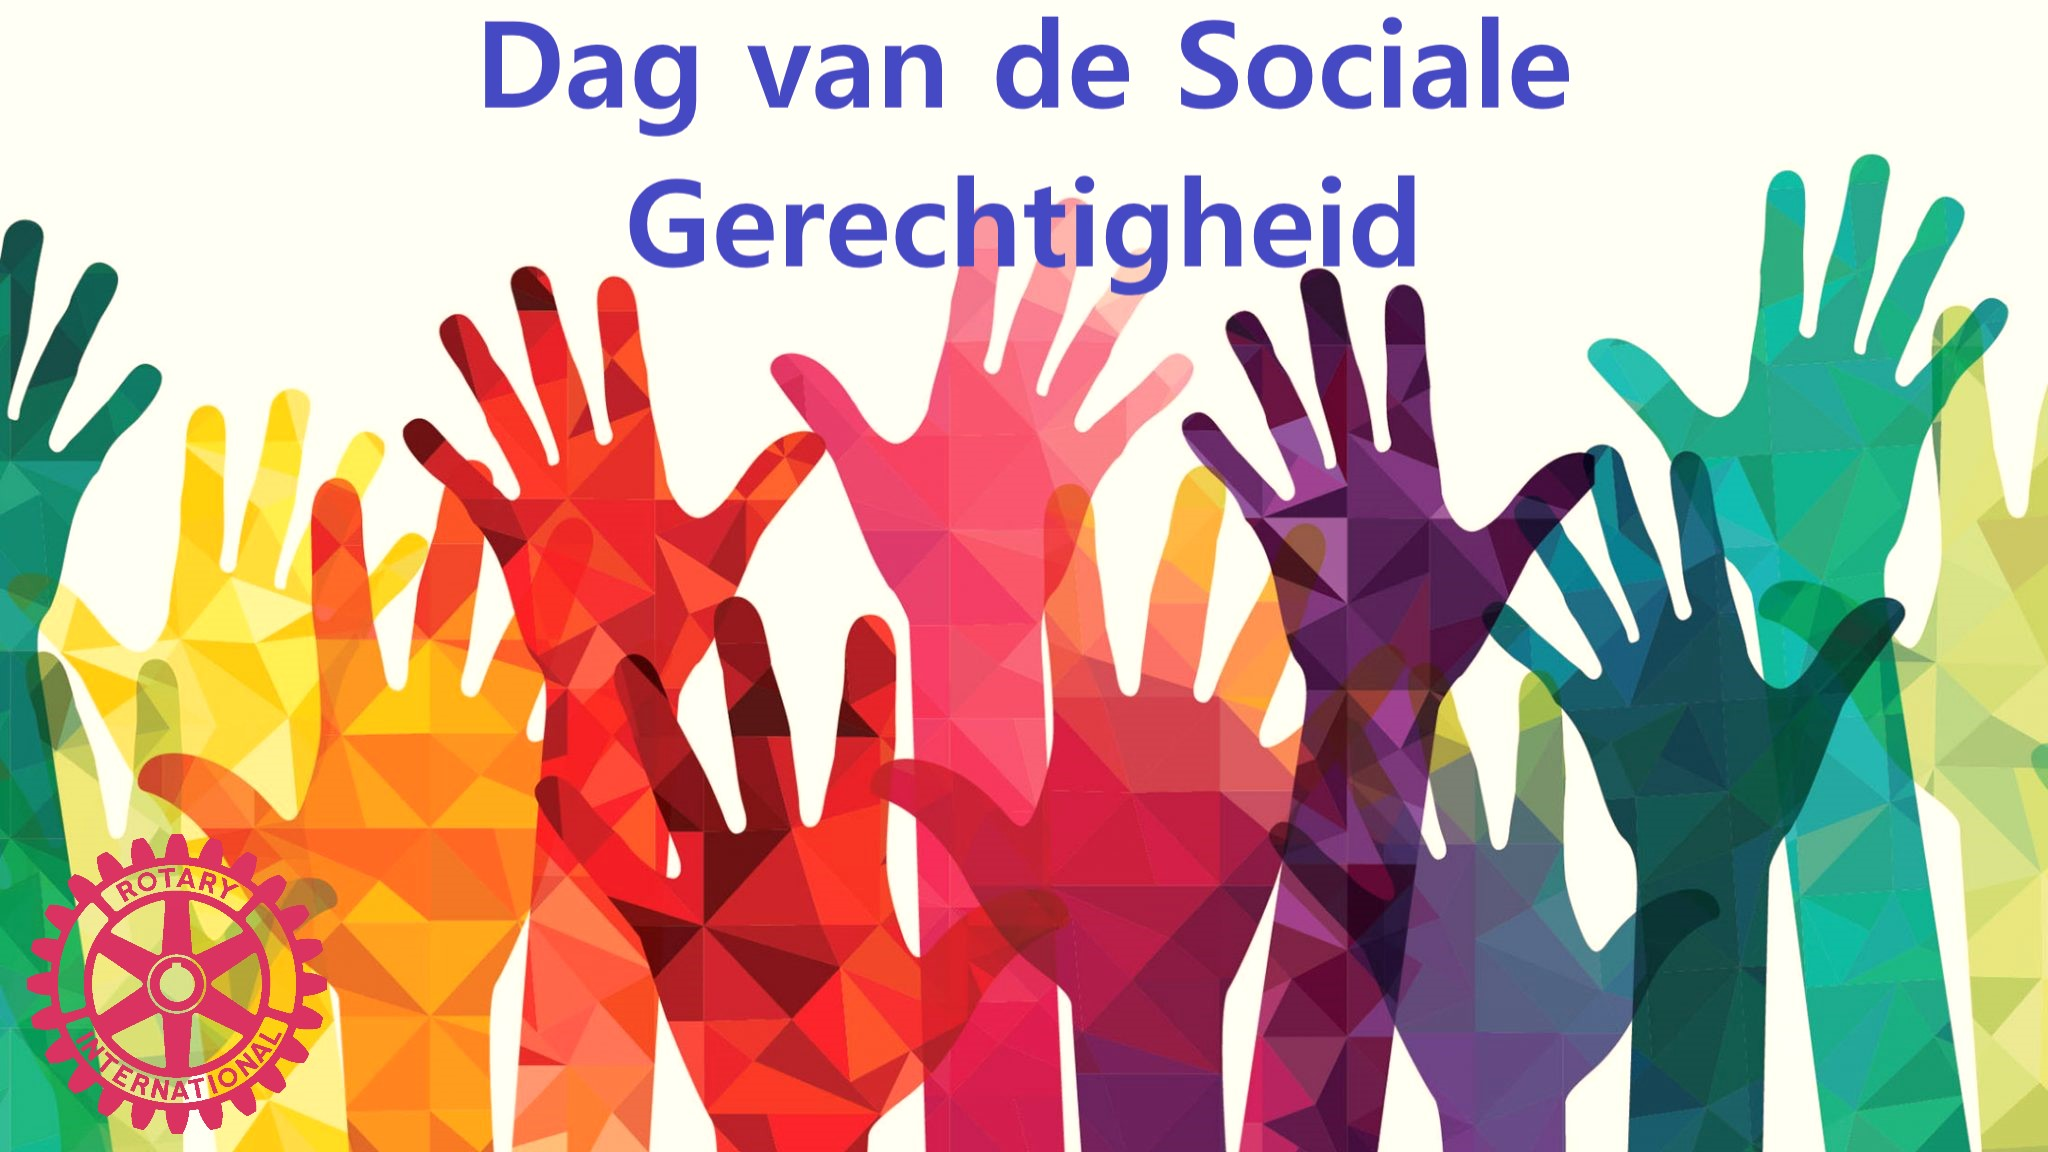 Internationale Dag van de Sociale Gerechtigheid – 20 februari